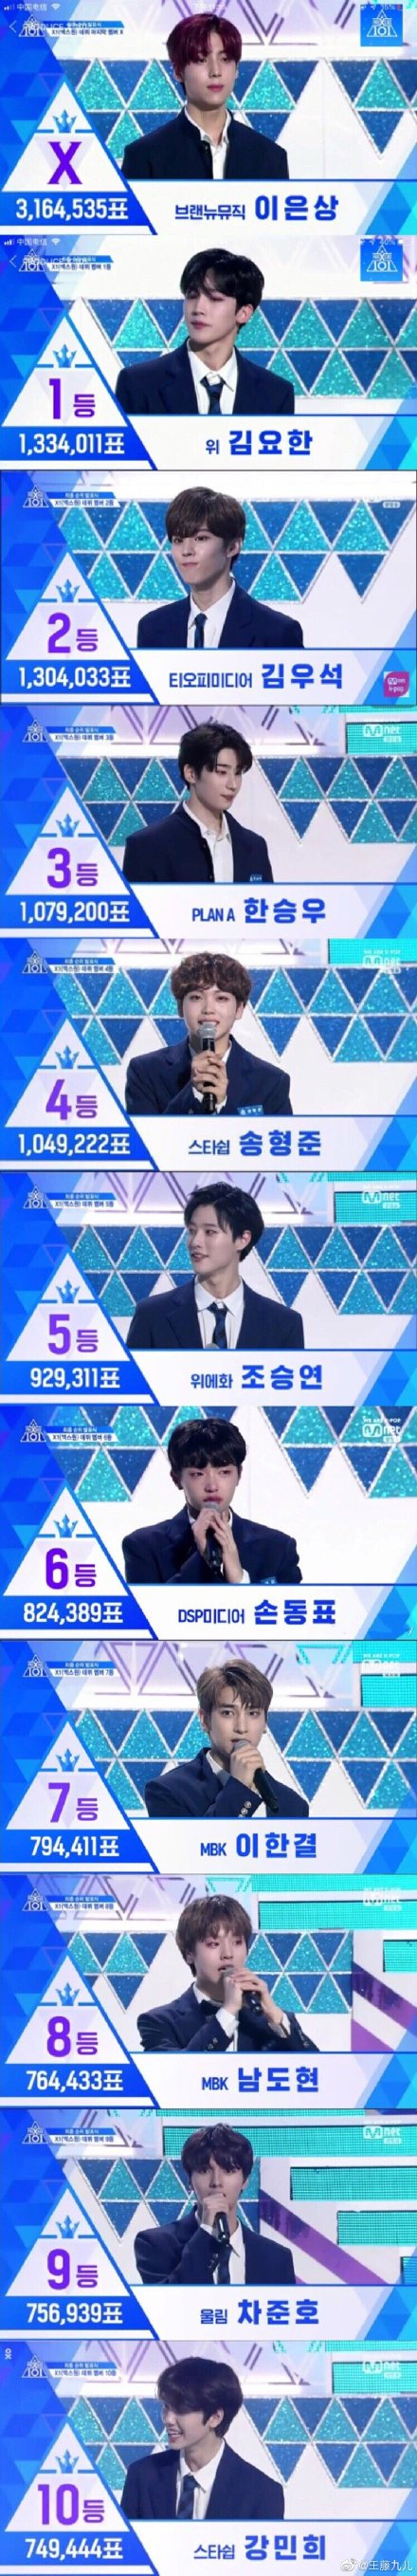 """PRODUCE X 101 """"X1"""" Group Debut"""